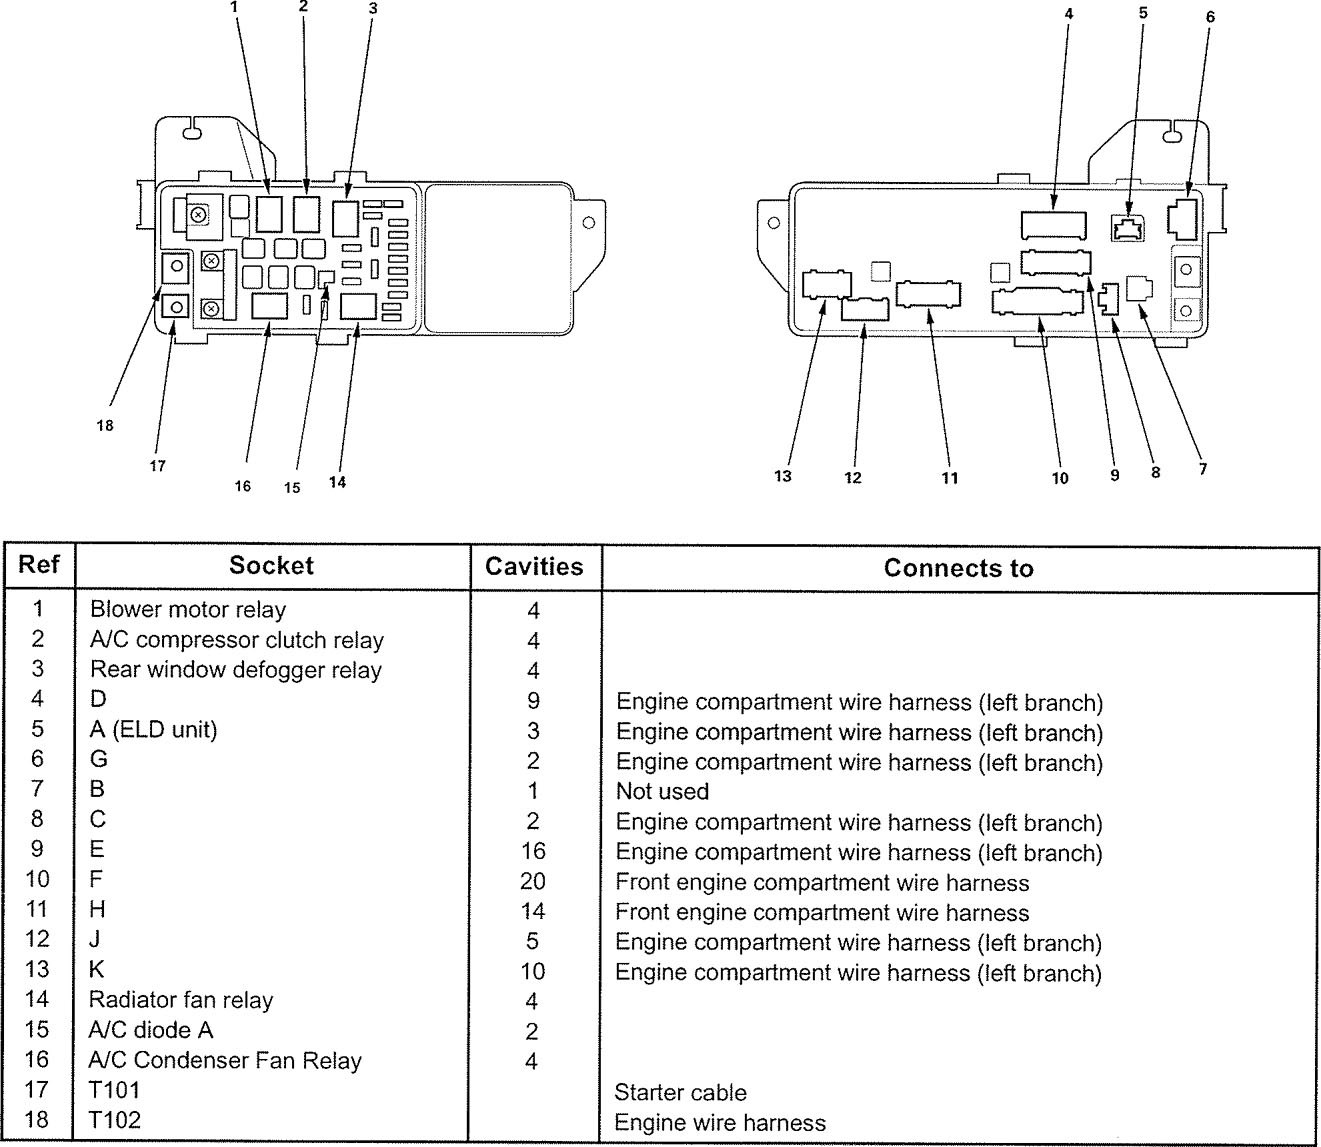 06 Acura Tl Fuse Diagram Wiring Diagrams Rl Box 2005 Panel Carknowledge 2006